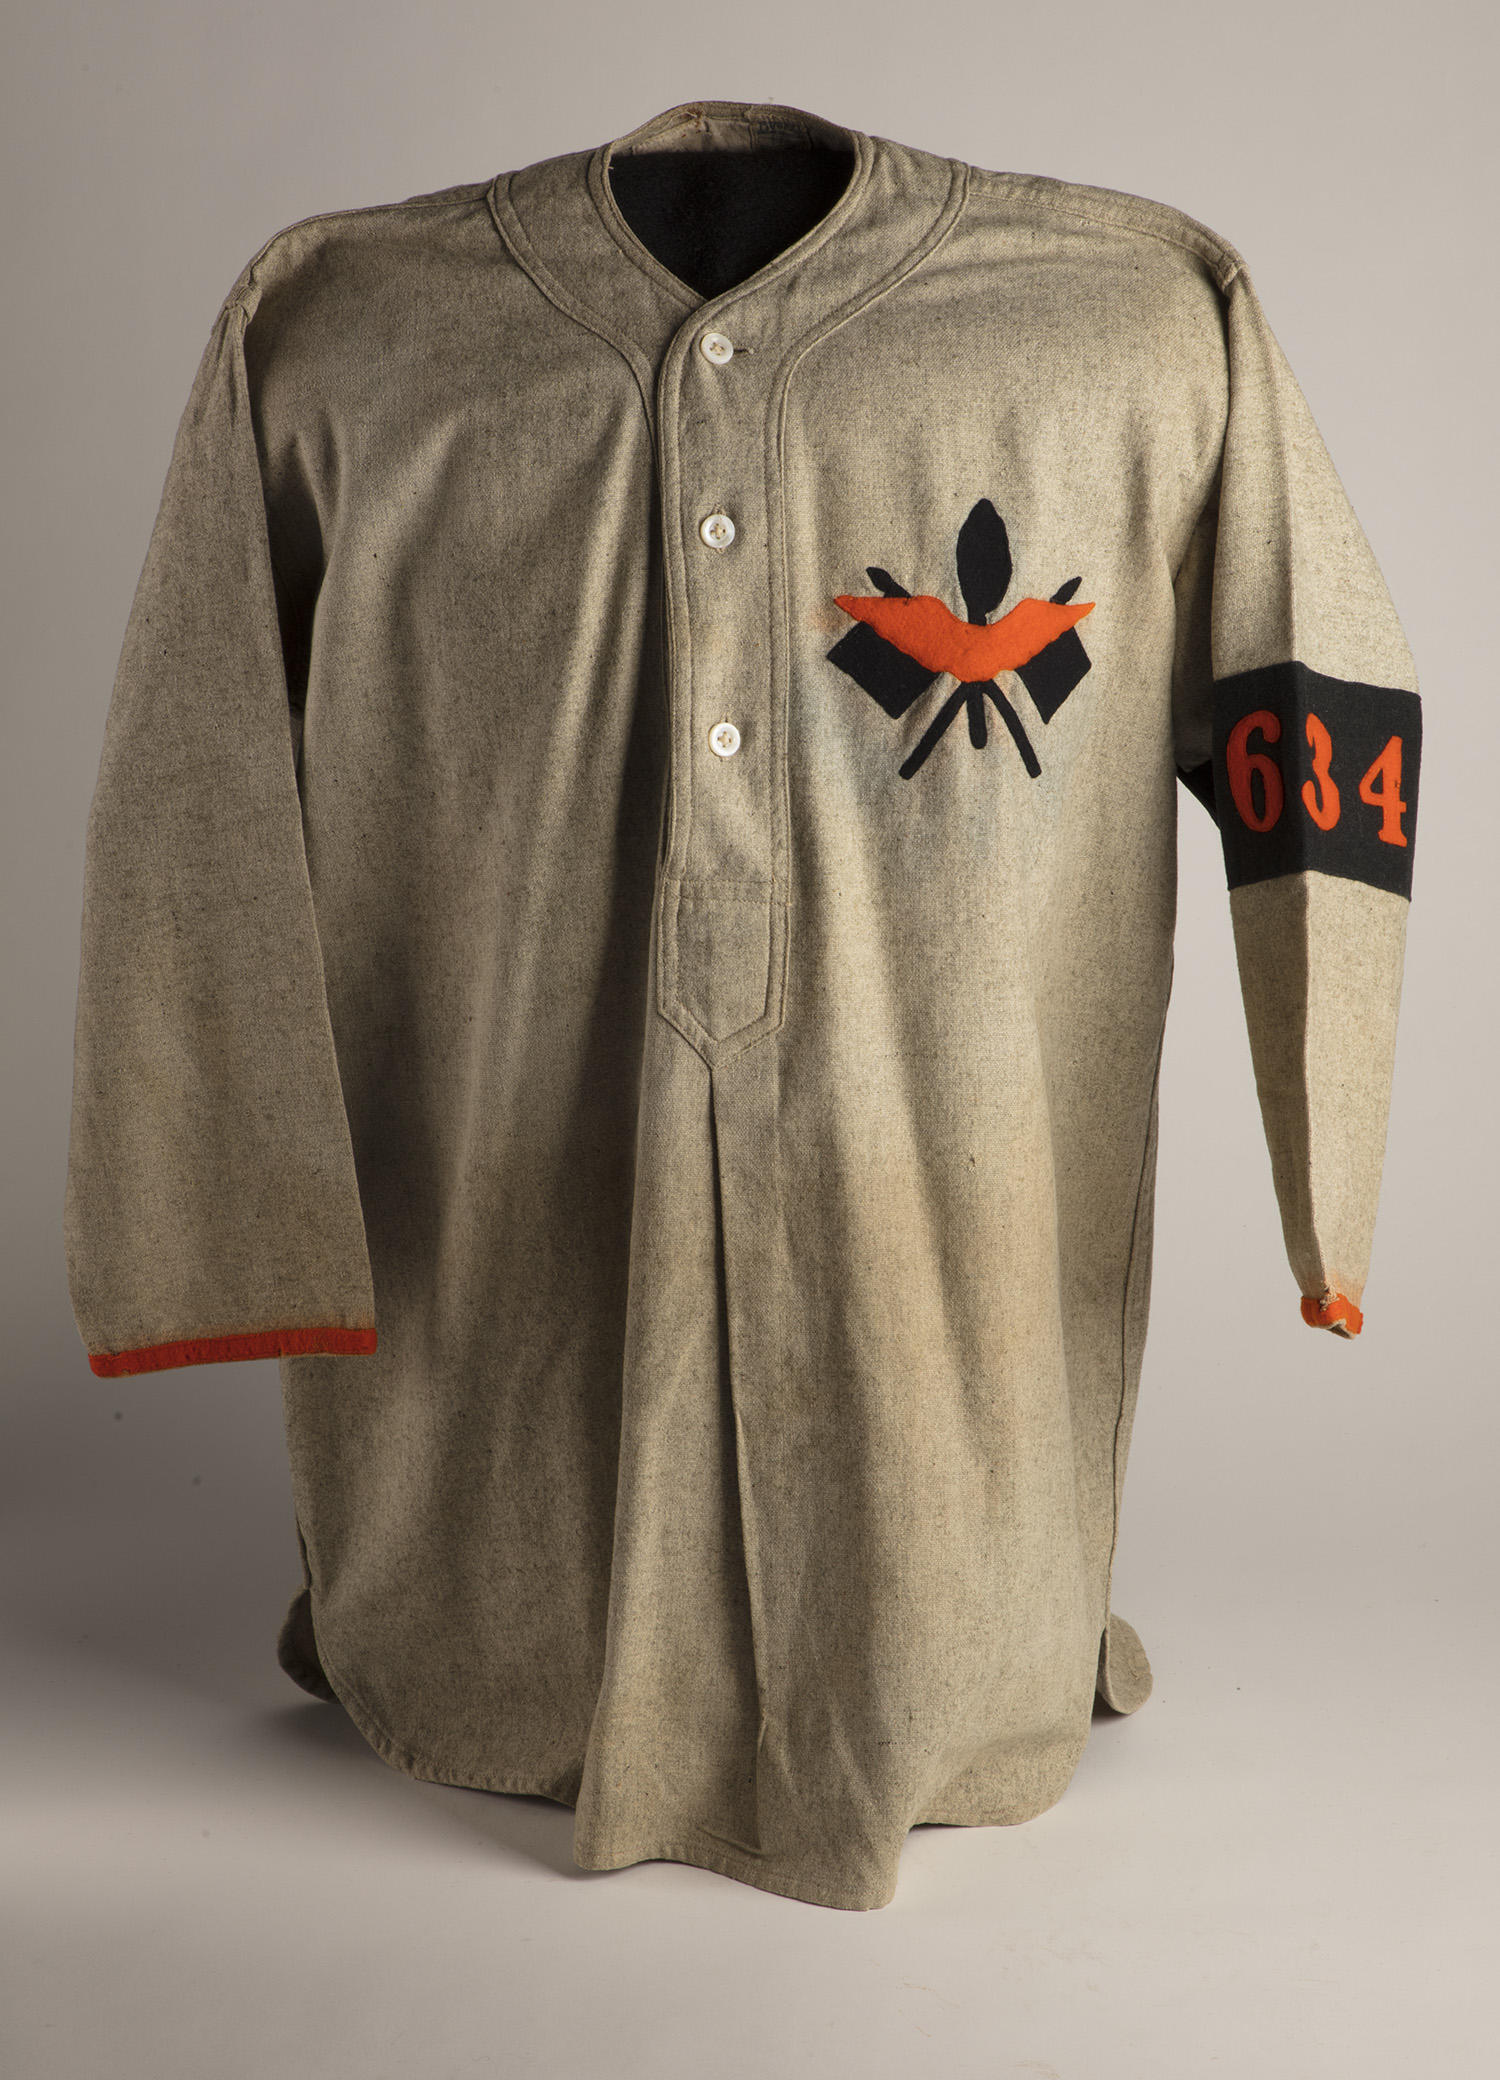 """This well-preserved World War I Army Signal Corps uniform was recently donated to the Hall of Fame by Ed Kaltreider, grandson of Walter Howard Kaltreider. <a href=""""https://collection.baseballhall.org/PASTIME/world-war-i-army-signal-corps-shirt-1917"""">PASTIME</a> (By Photographer Milo Stewart Jr./National Baseball Hall of Fame and Museum)"""